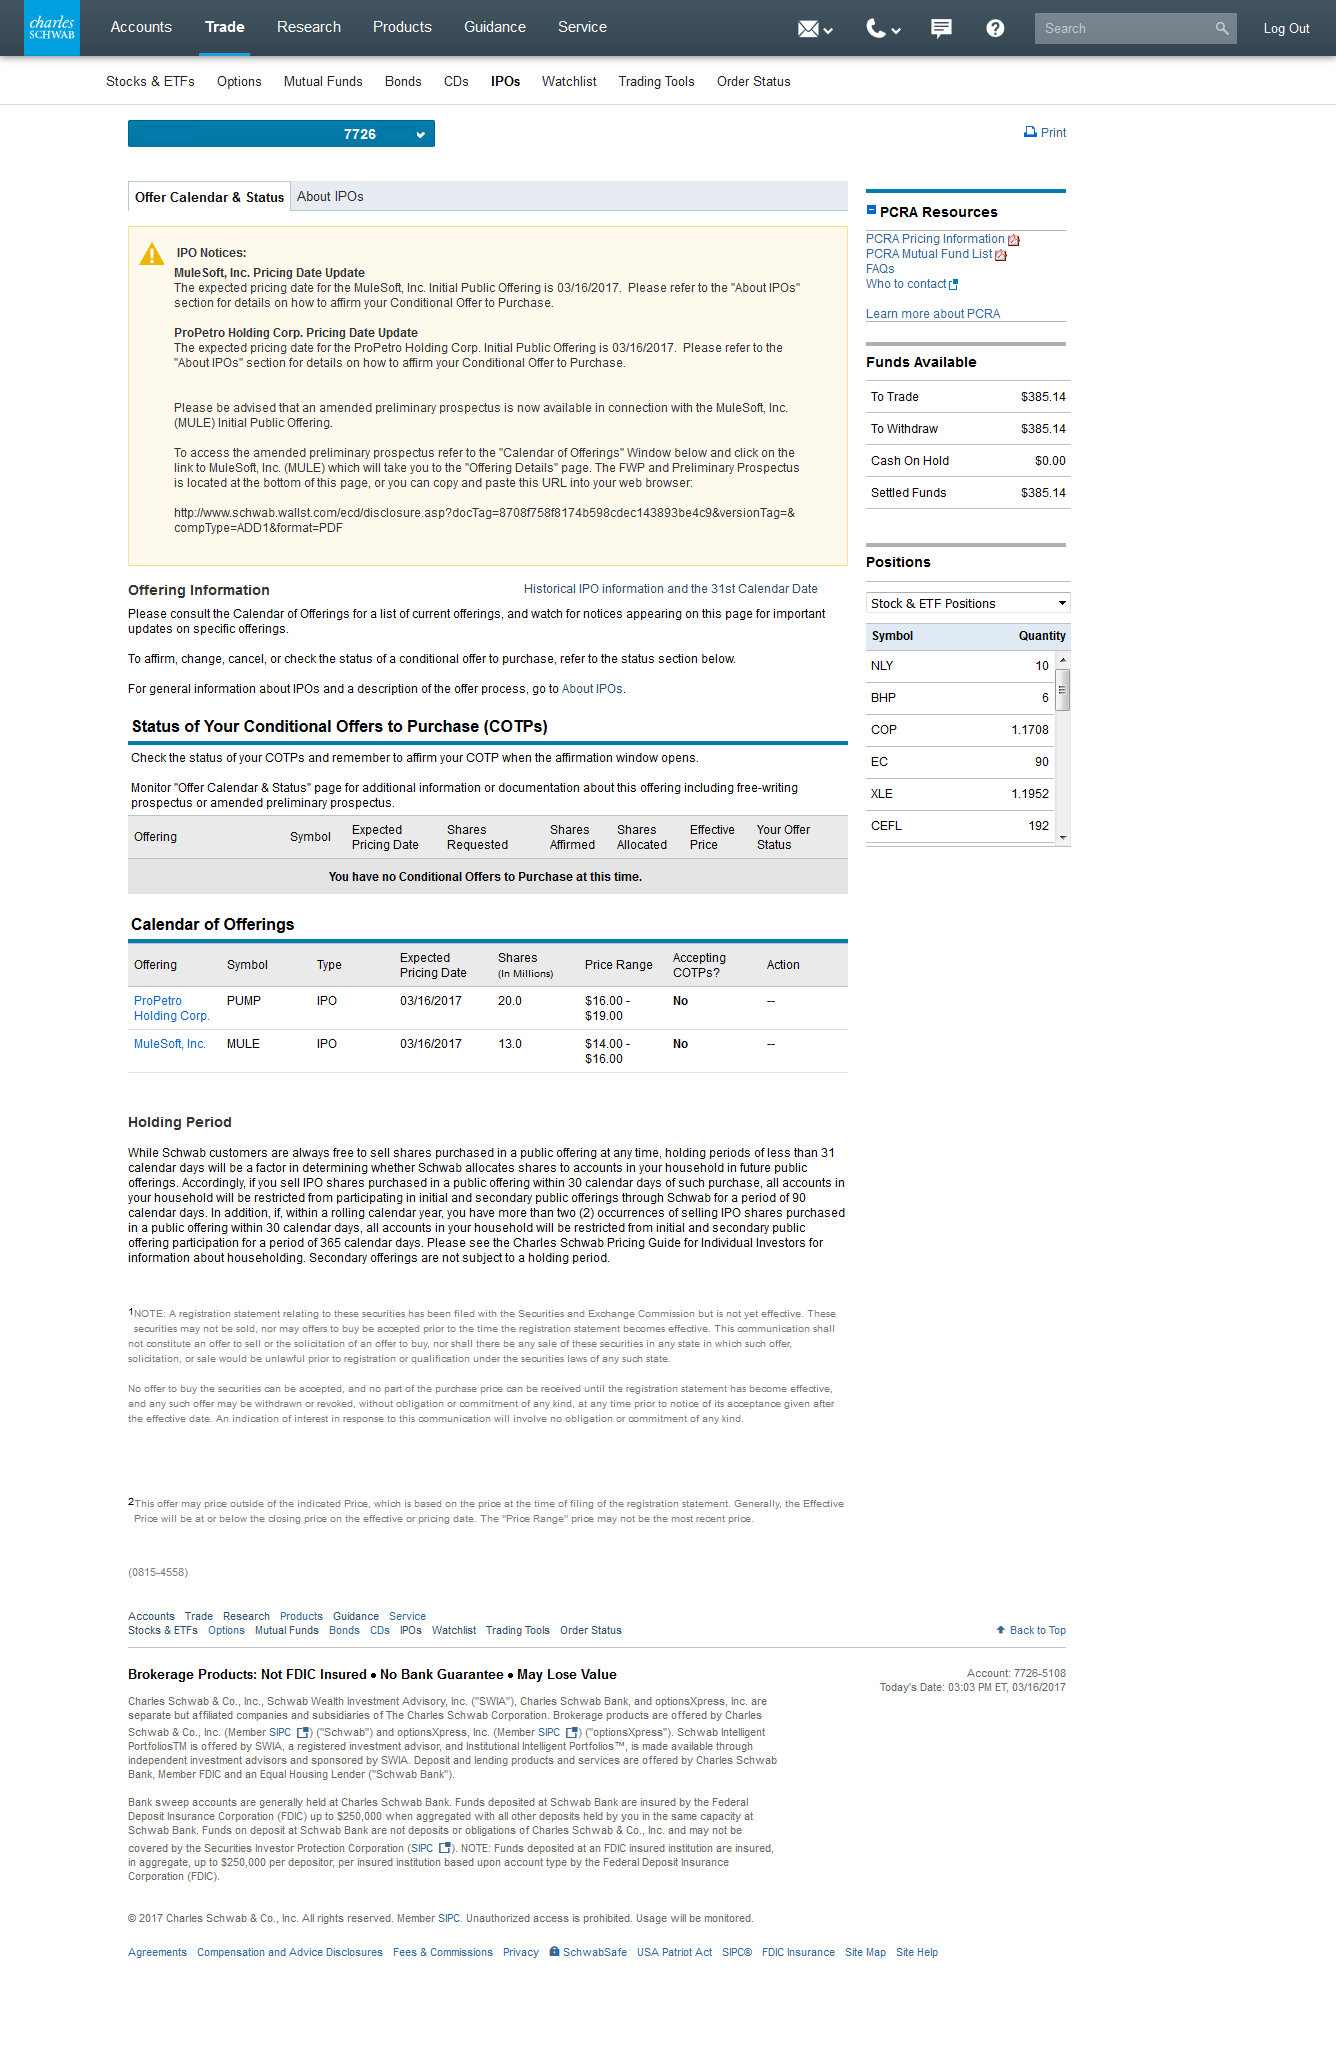 calendar of ipo offerings and preliminary prospectus on a schwab brokerage account